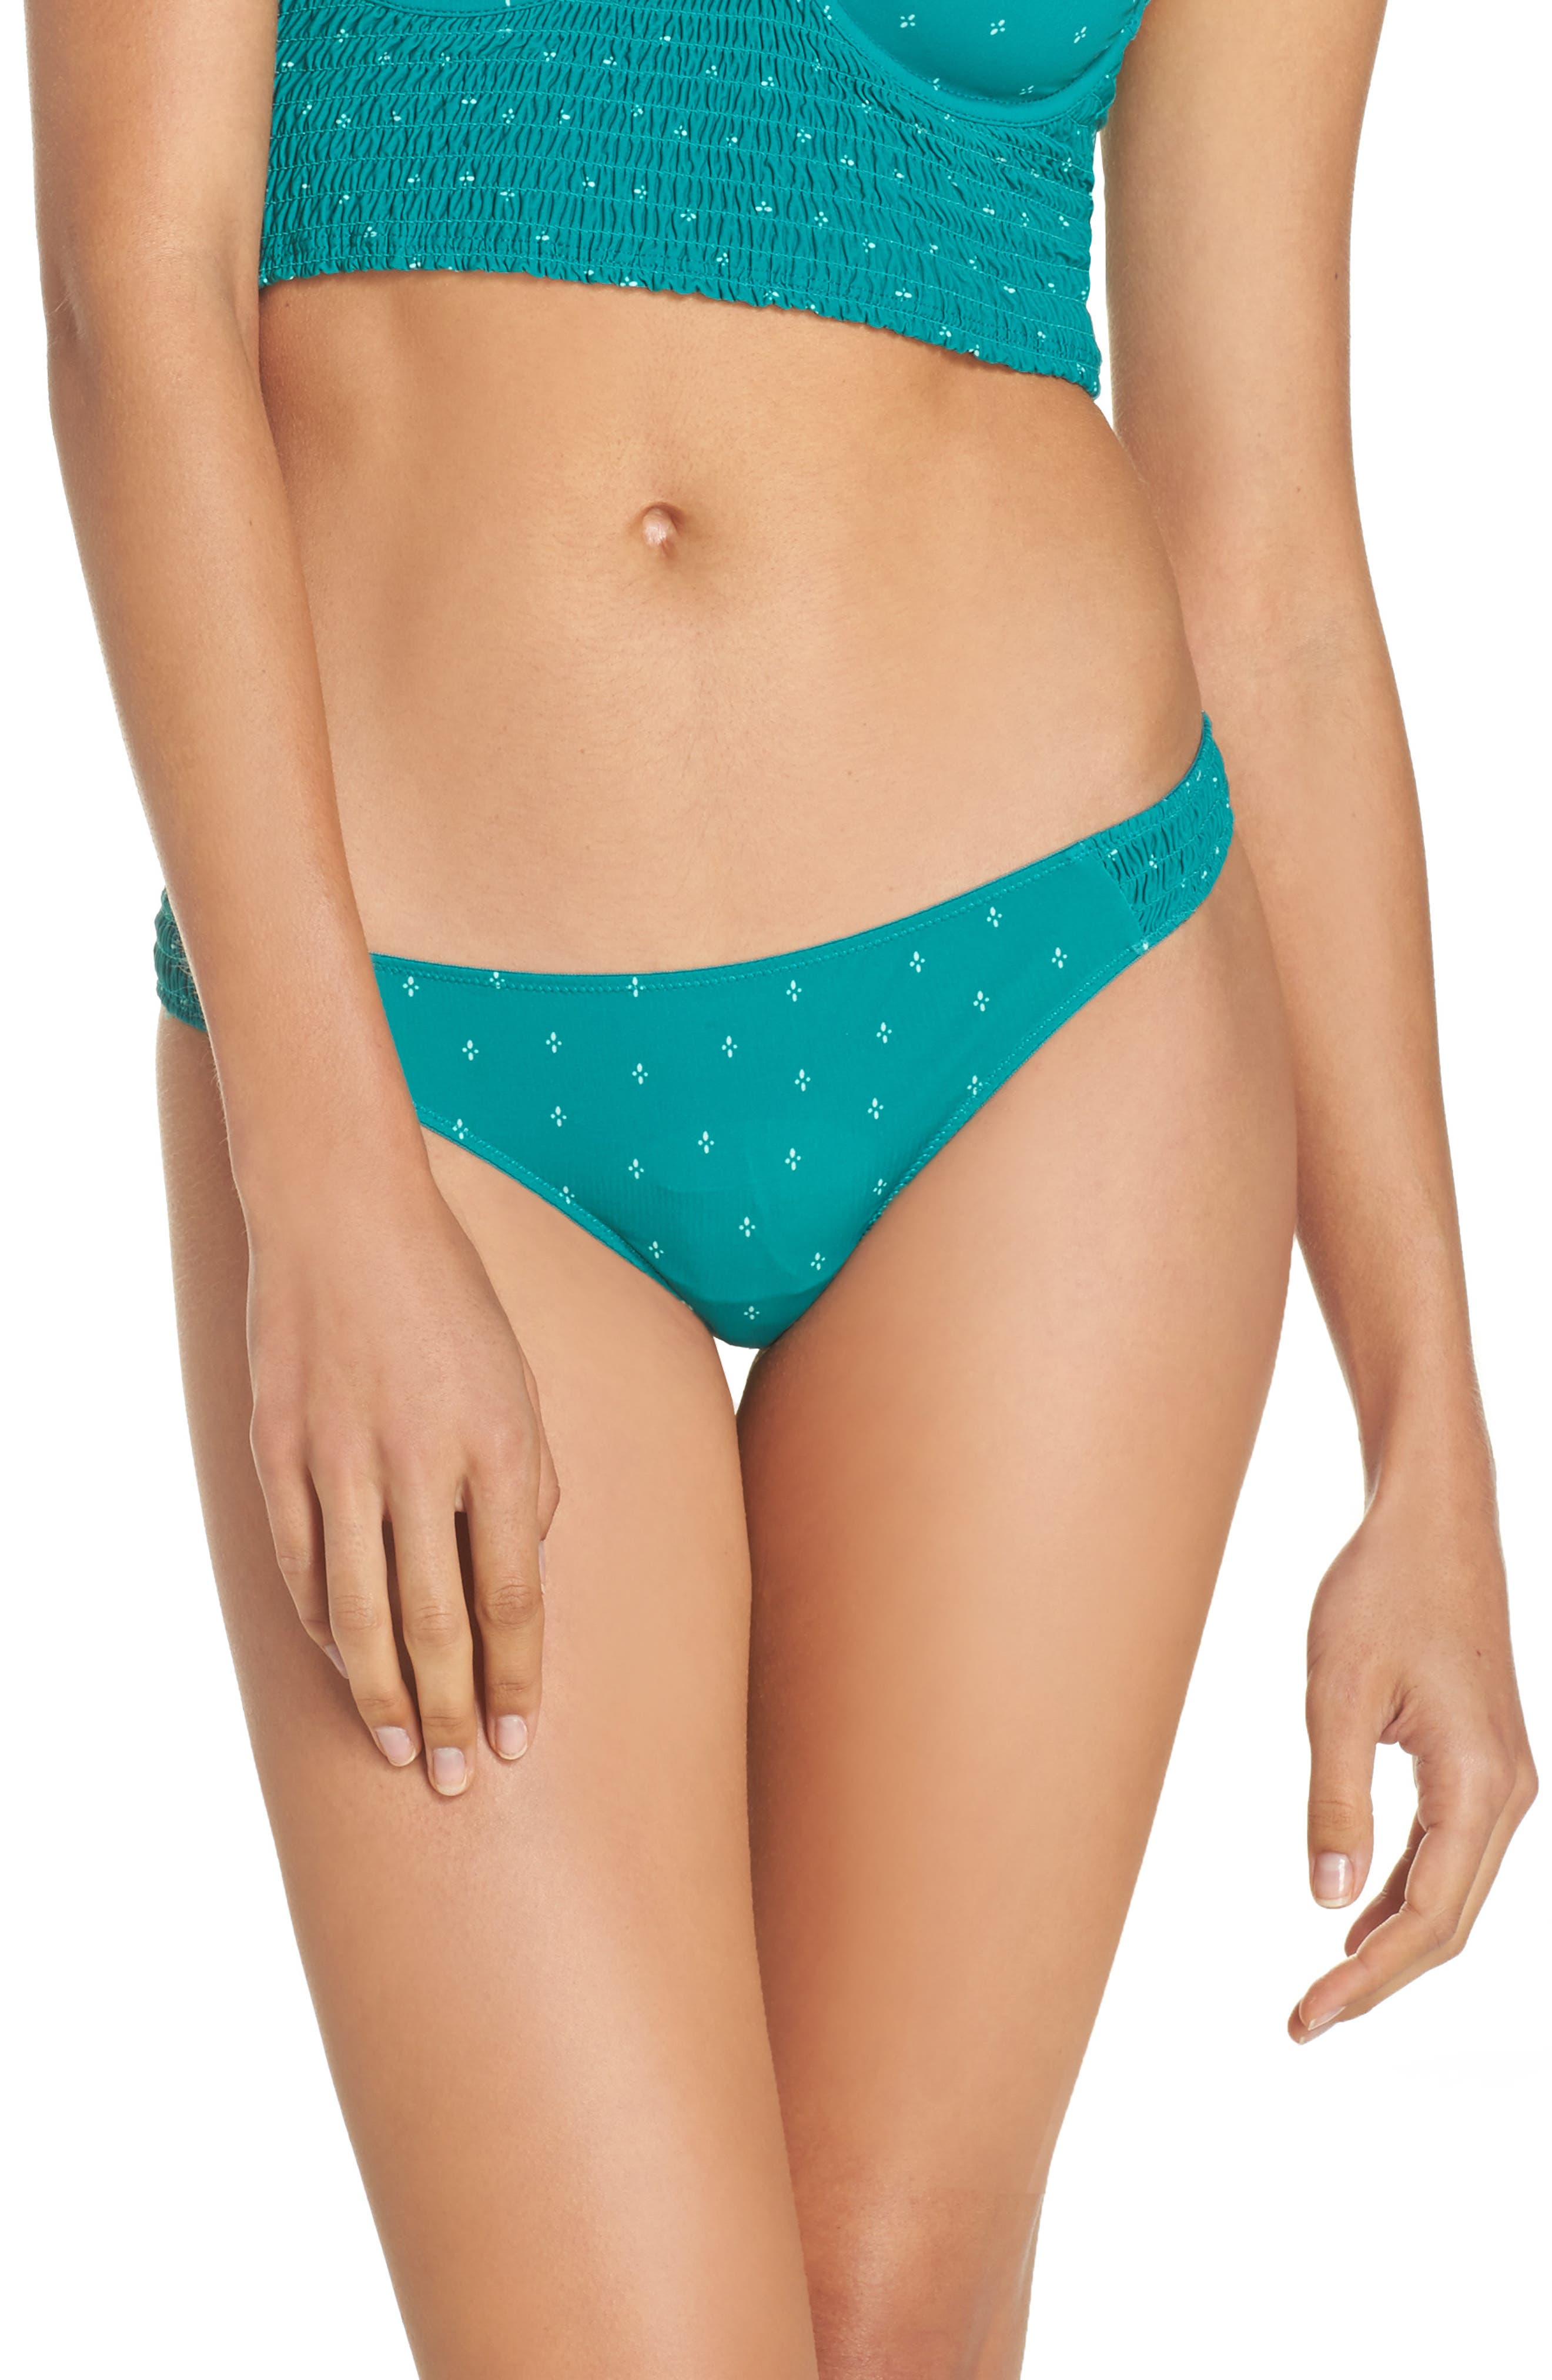 Intimately FP Come a Little Closure Thong,                             Main thumbnail 1, color,                             Green